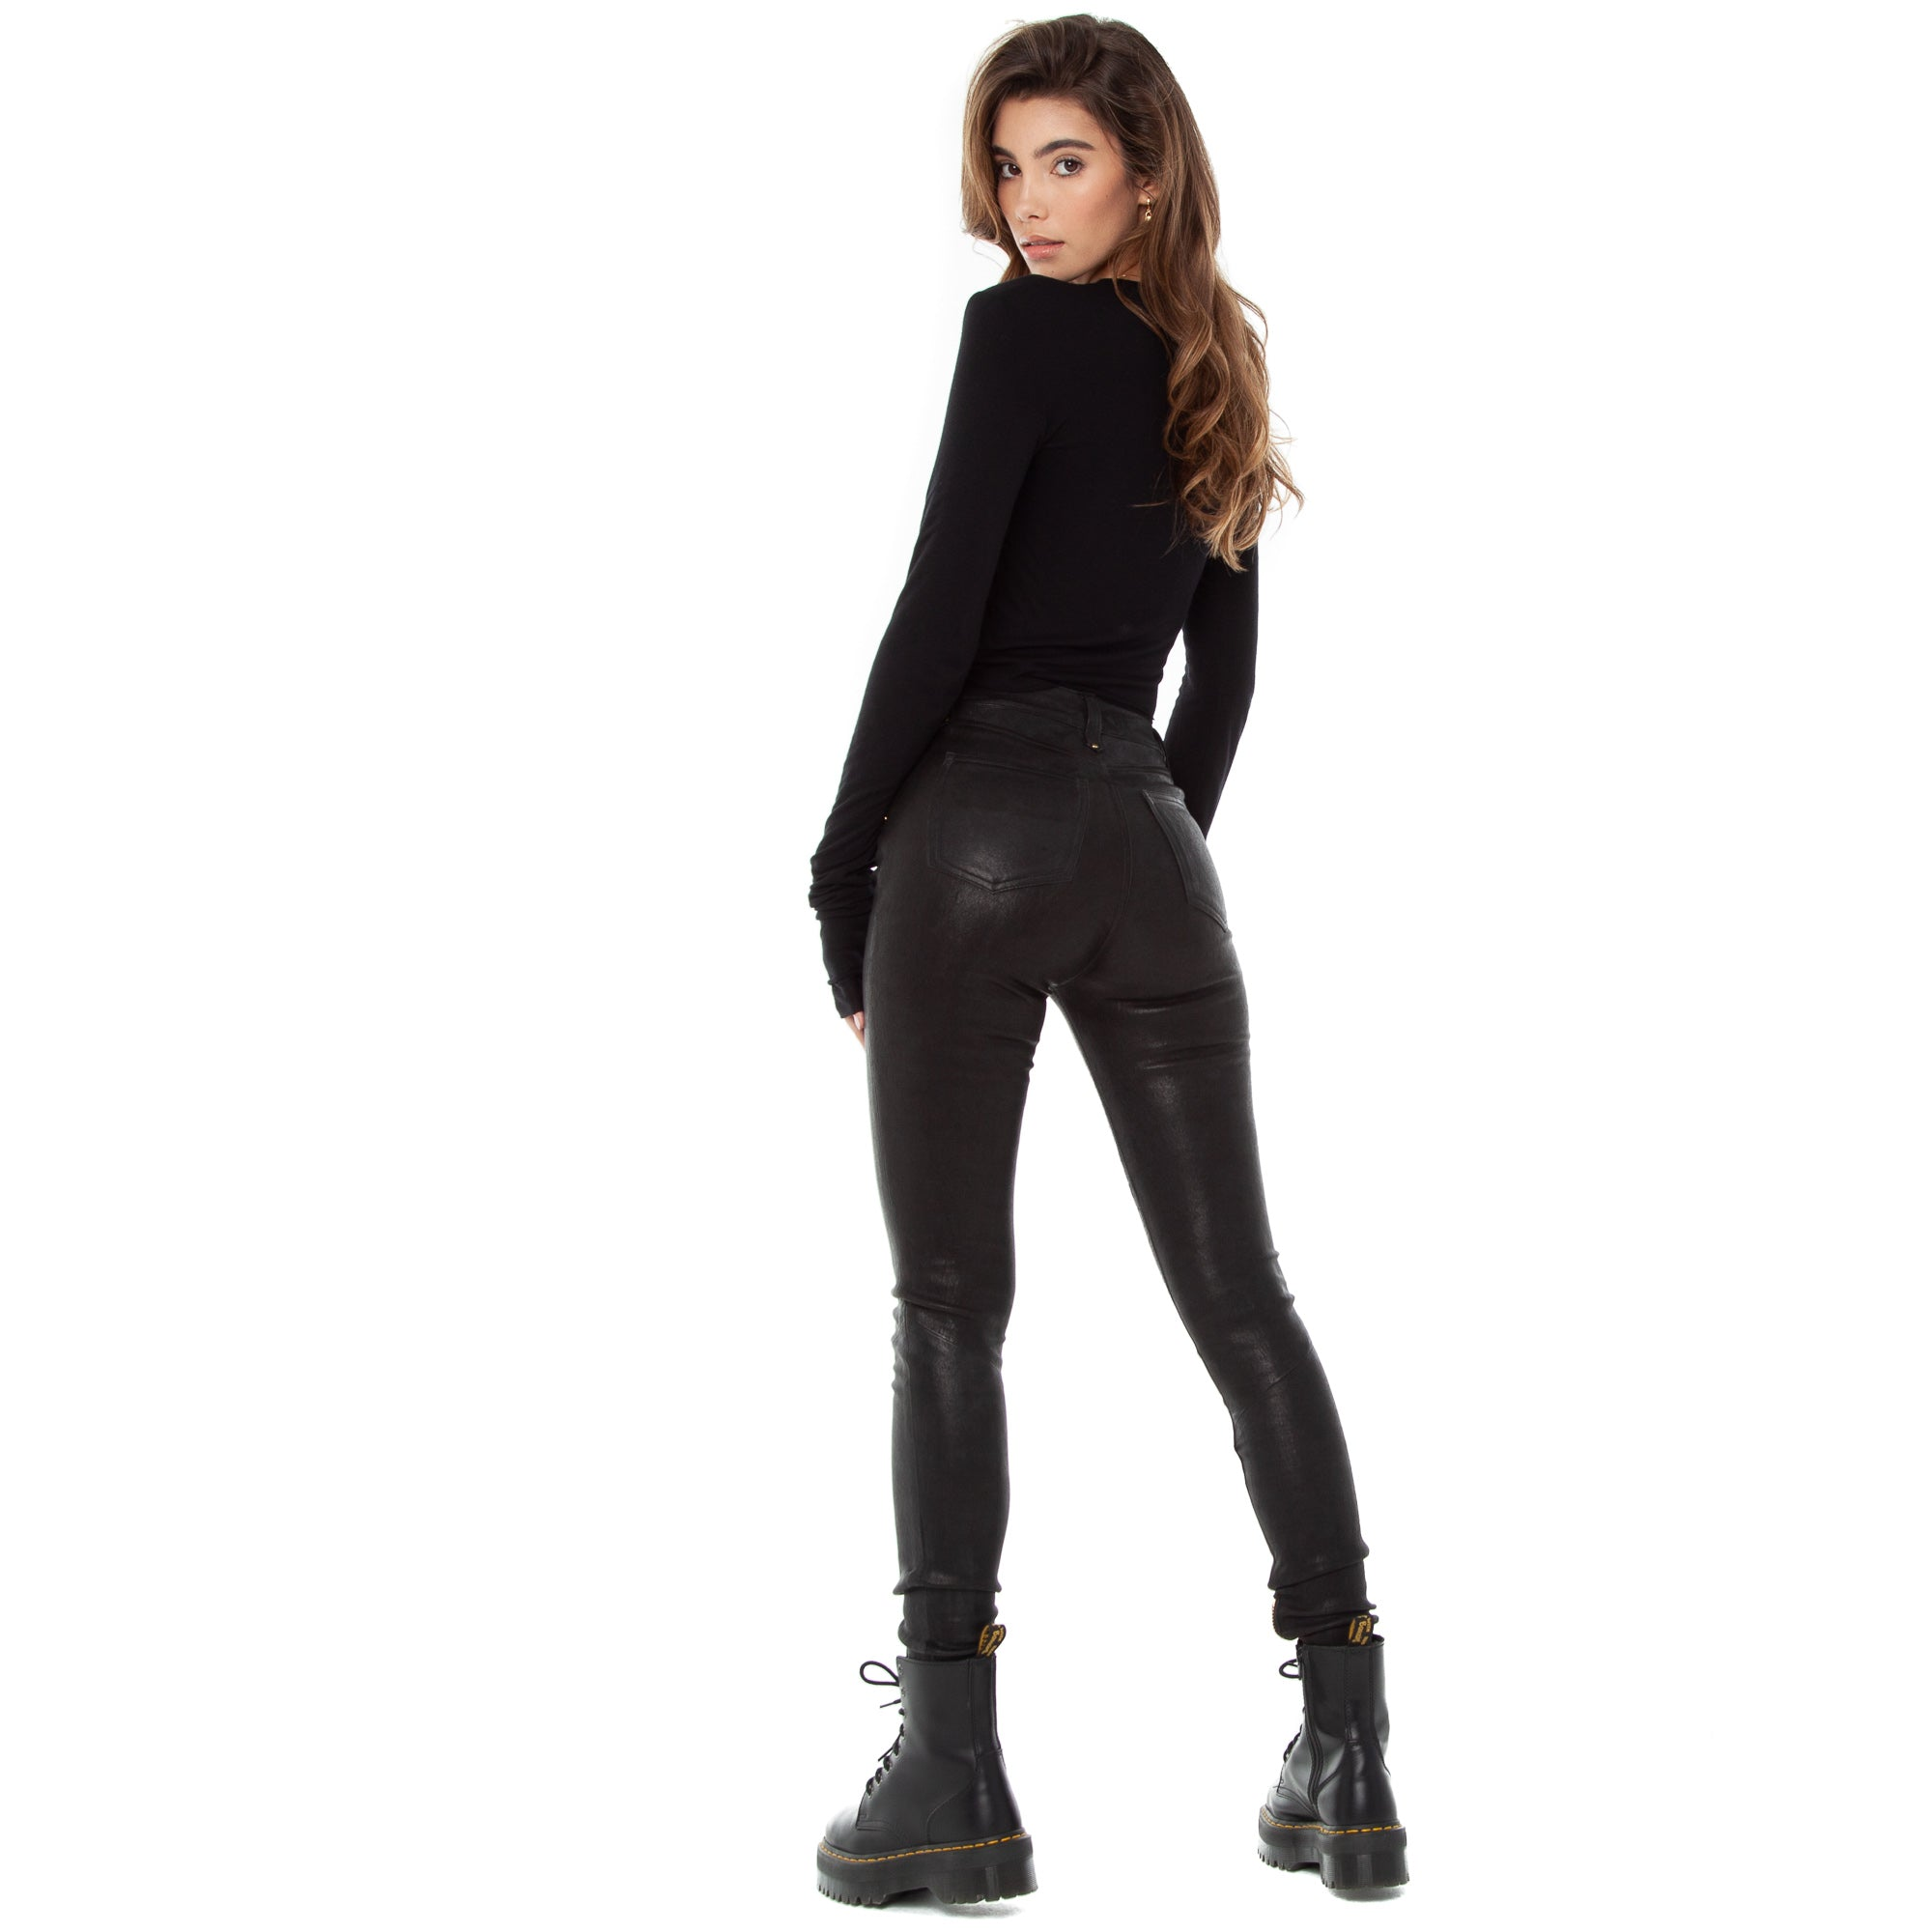 Are You Am I - Dalem Leather Pants